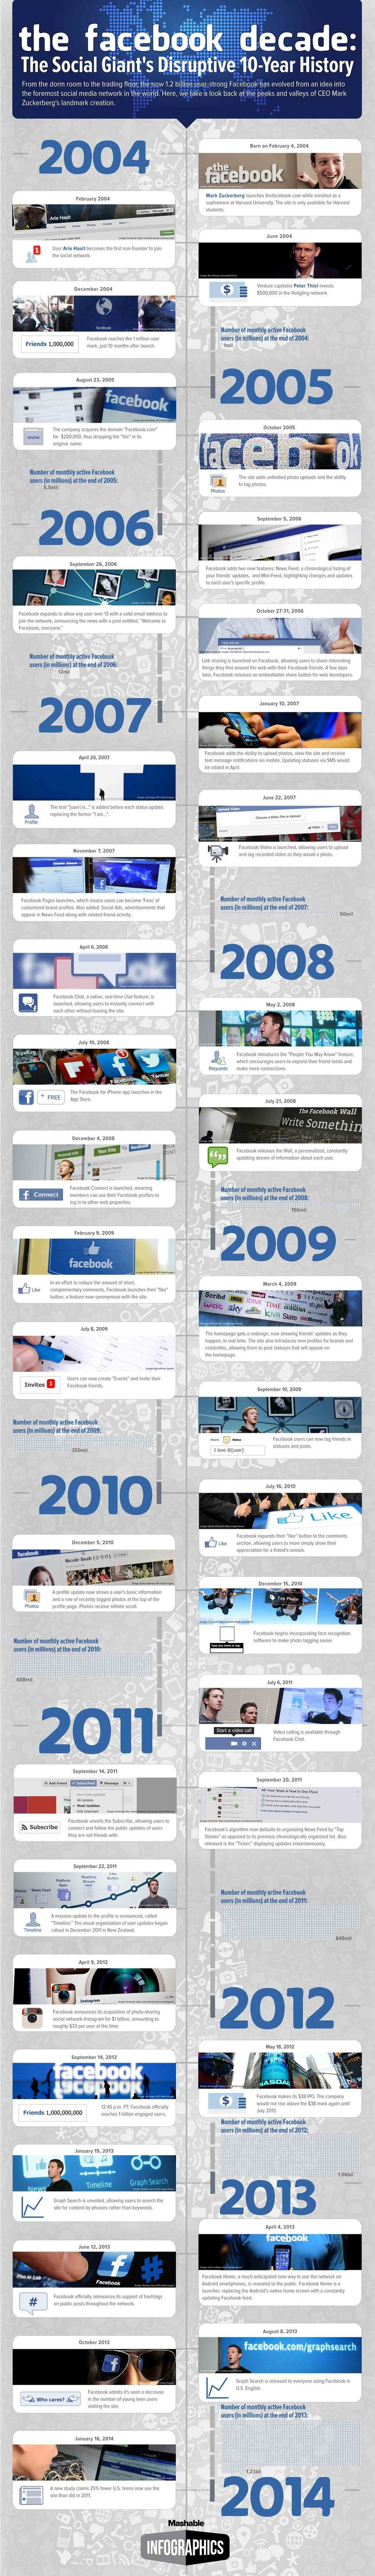 The Facebook Decade: A Review of the Social Giant's Disruptive History [INFOGRAPHIC]